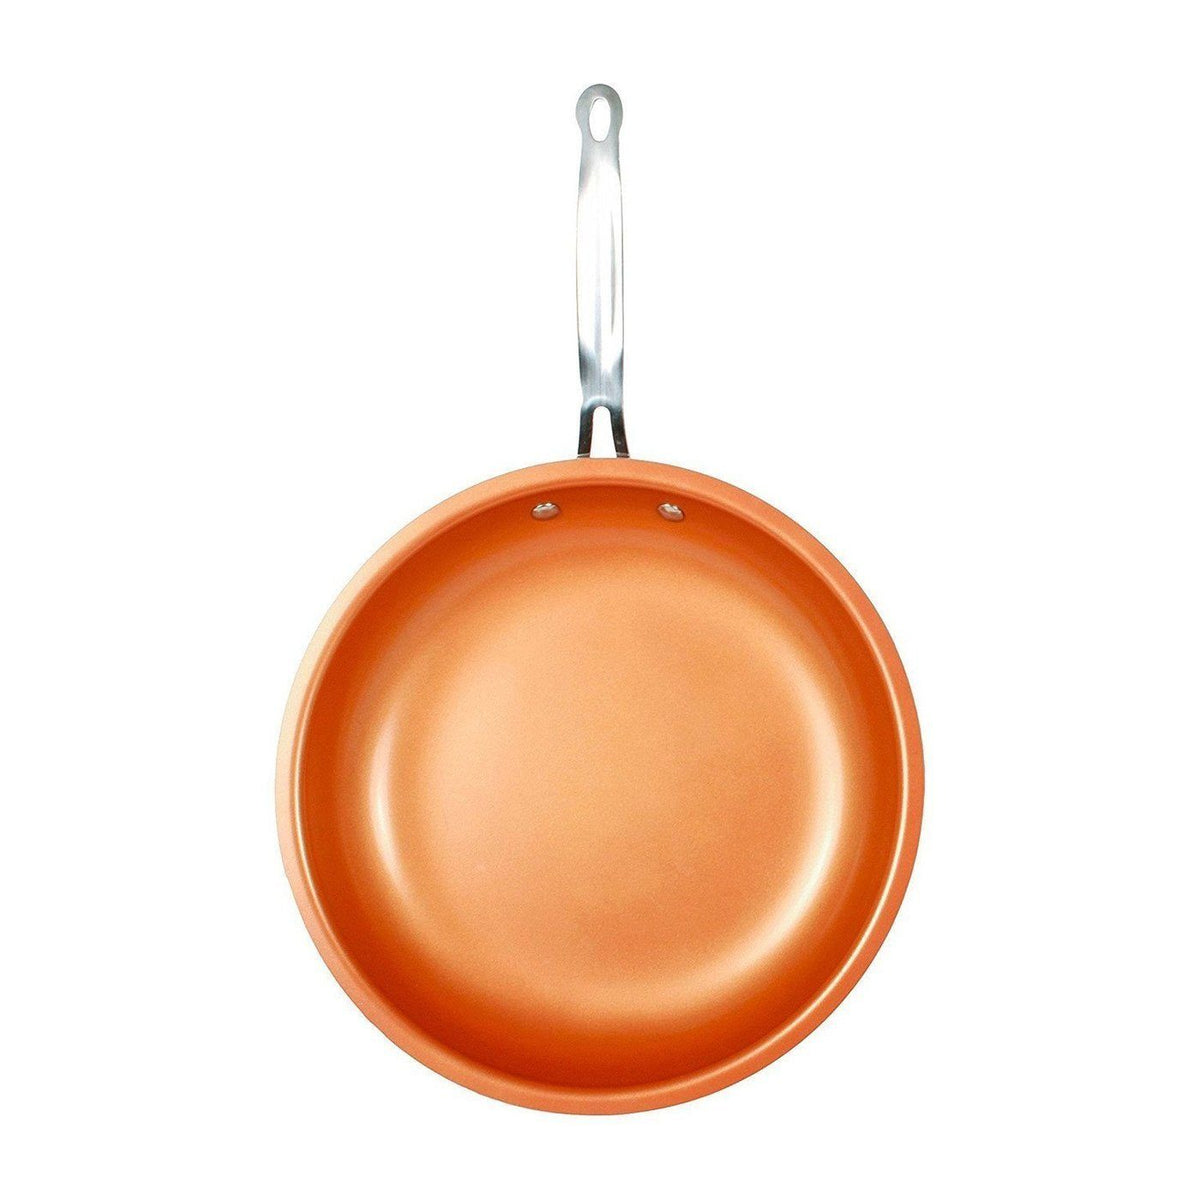 FREE SHIPPING - Non-stick Copper Frying Pan